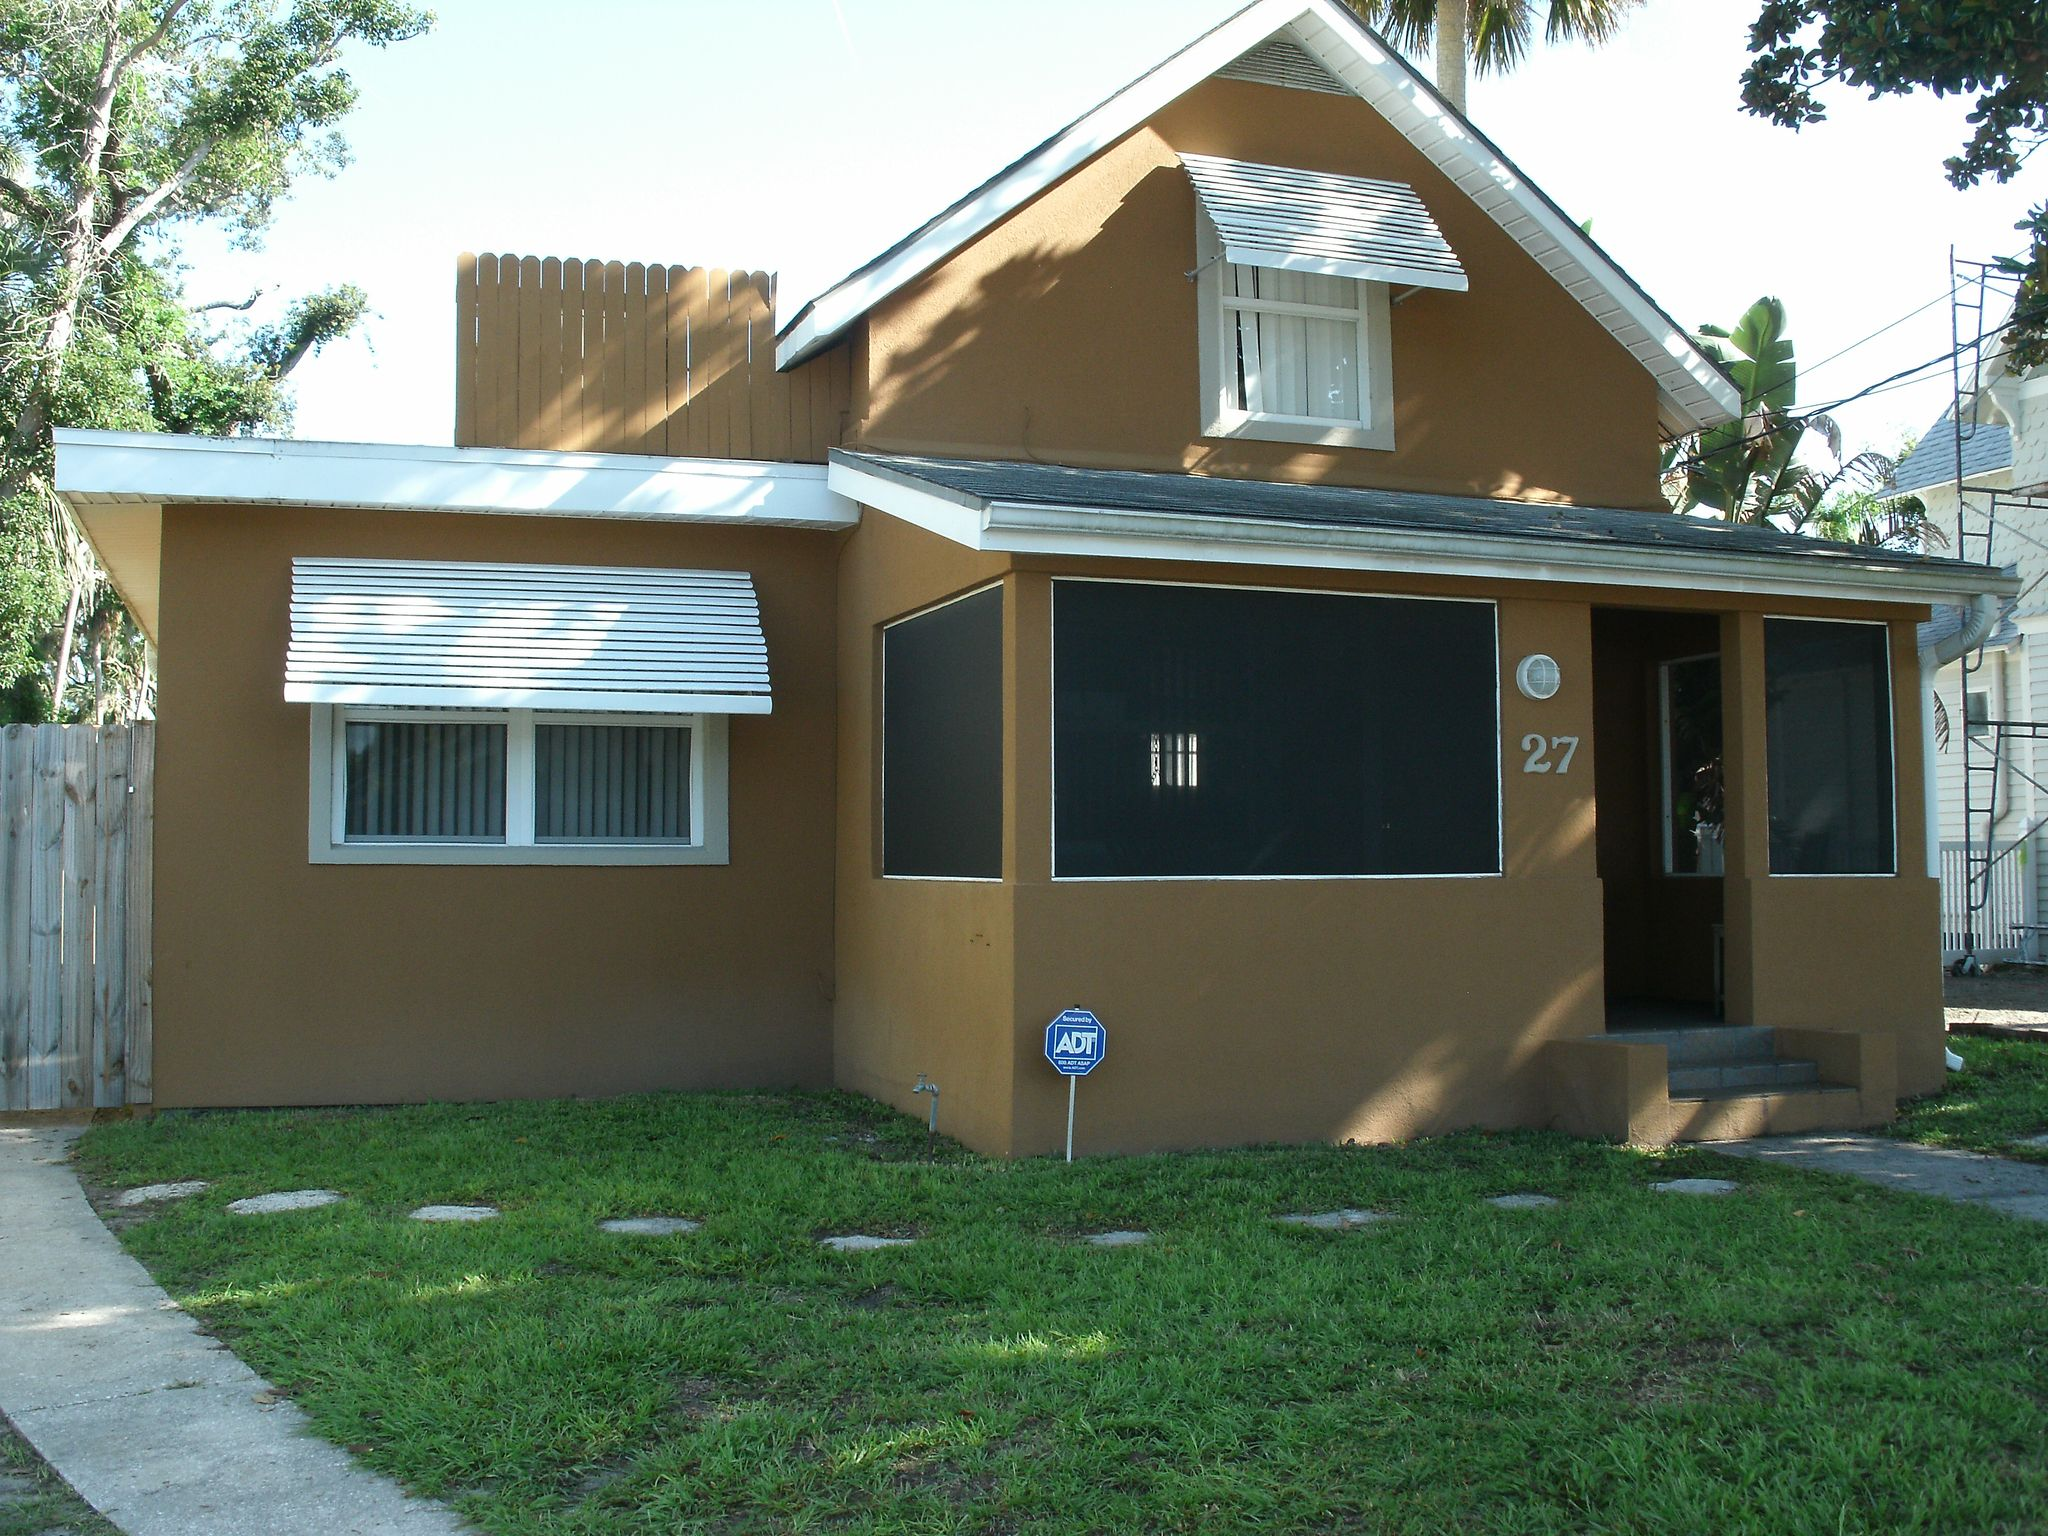 Cool 27 Lincoln Ave Ormond Beach Fl 32174 2 Bed 2 Bath Single Family Home 12 Photos Trulia Download Free Architecture Designs Pushbritishbridgeorg